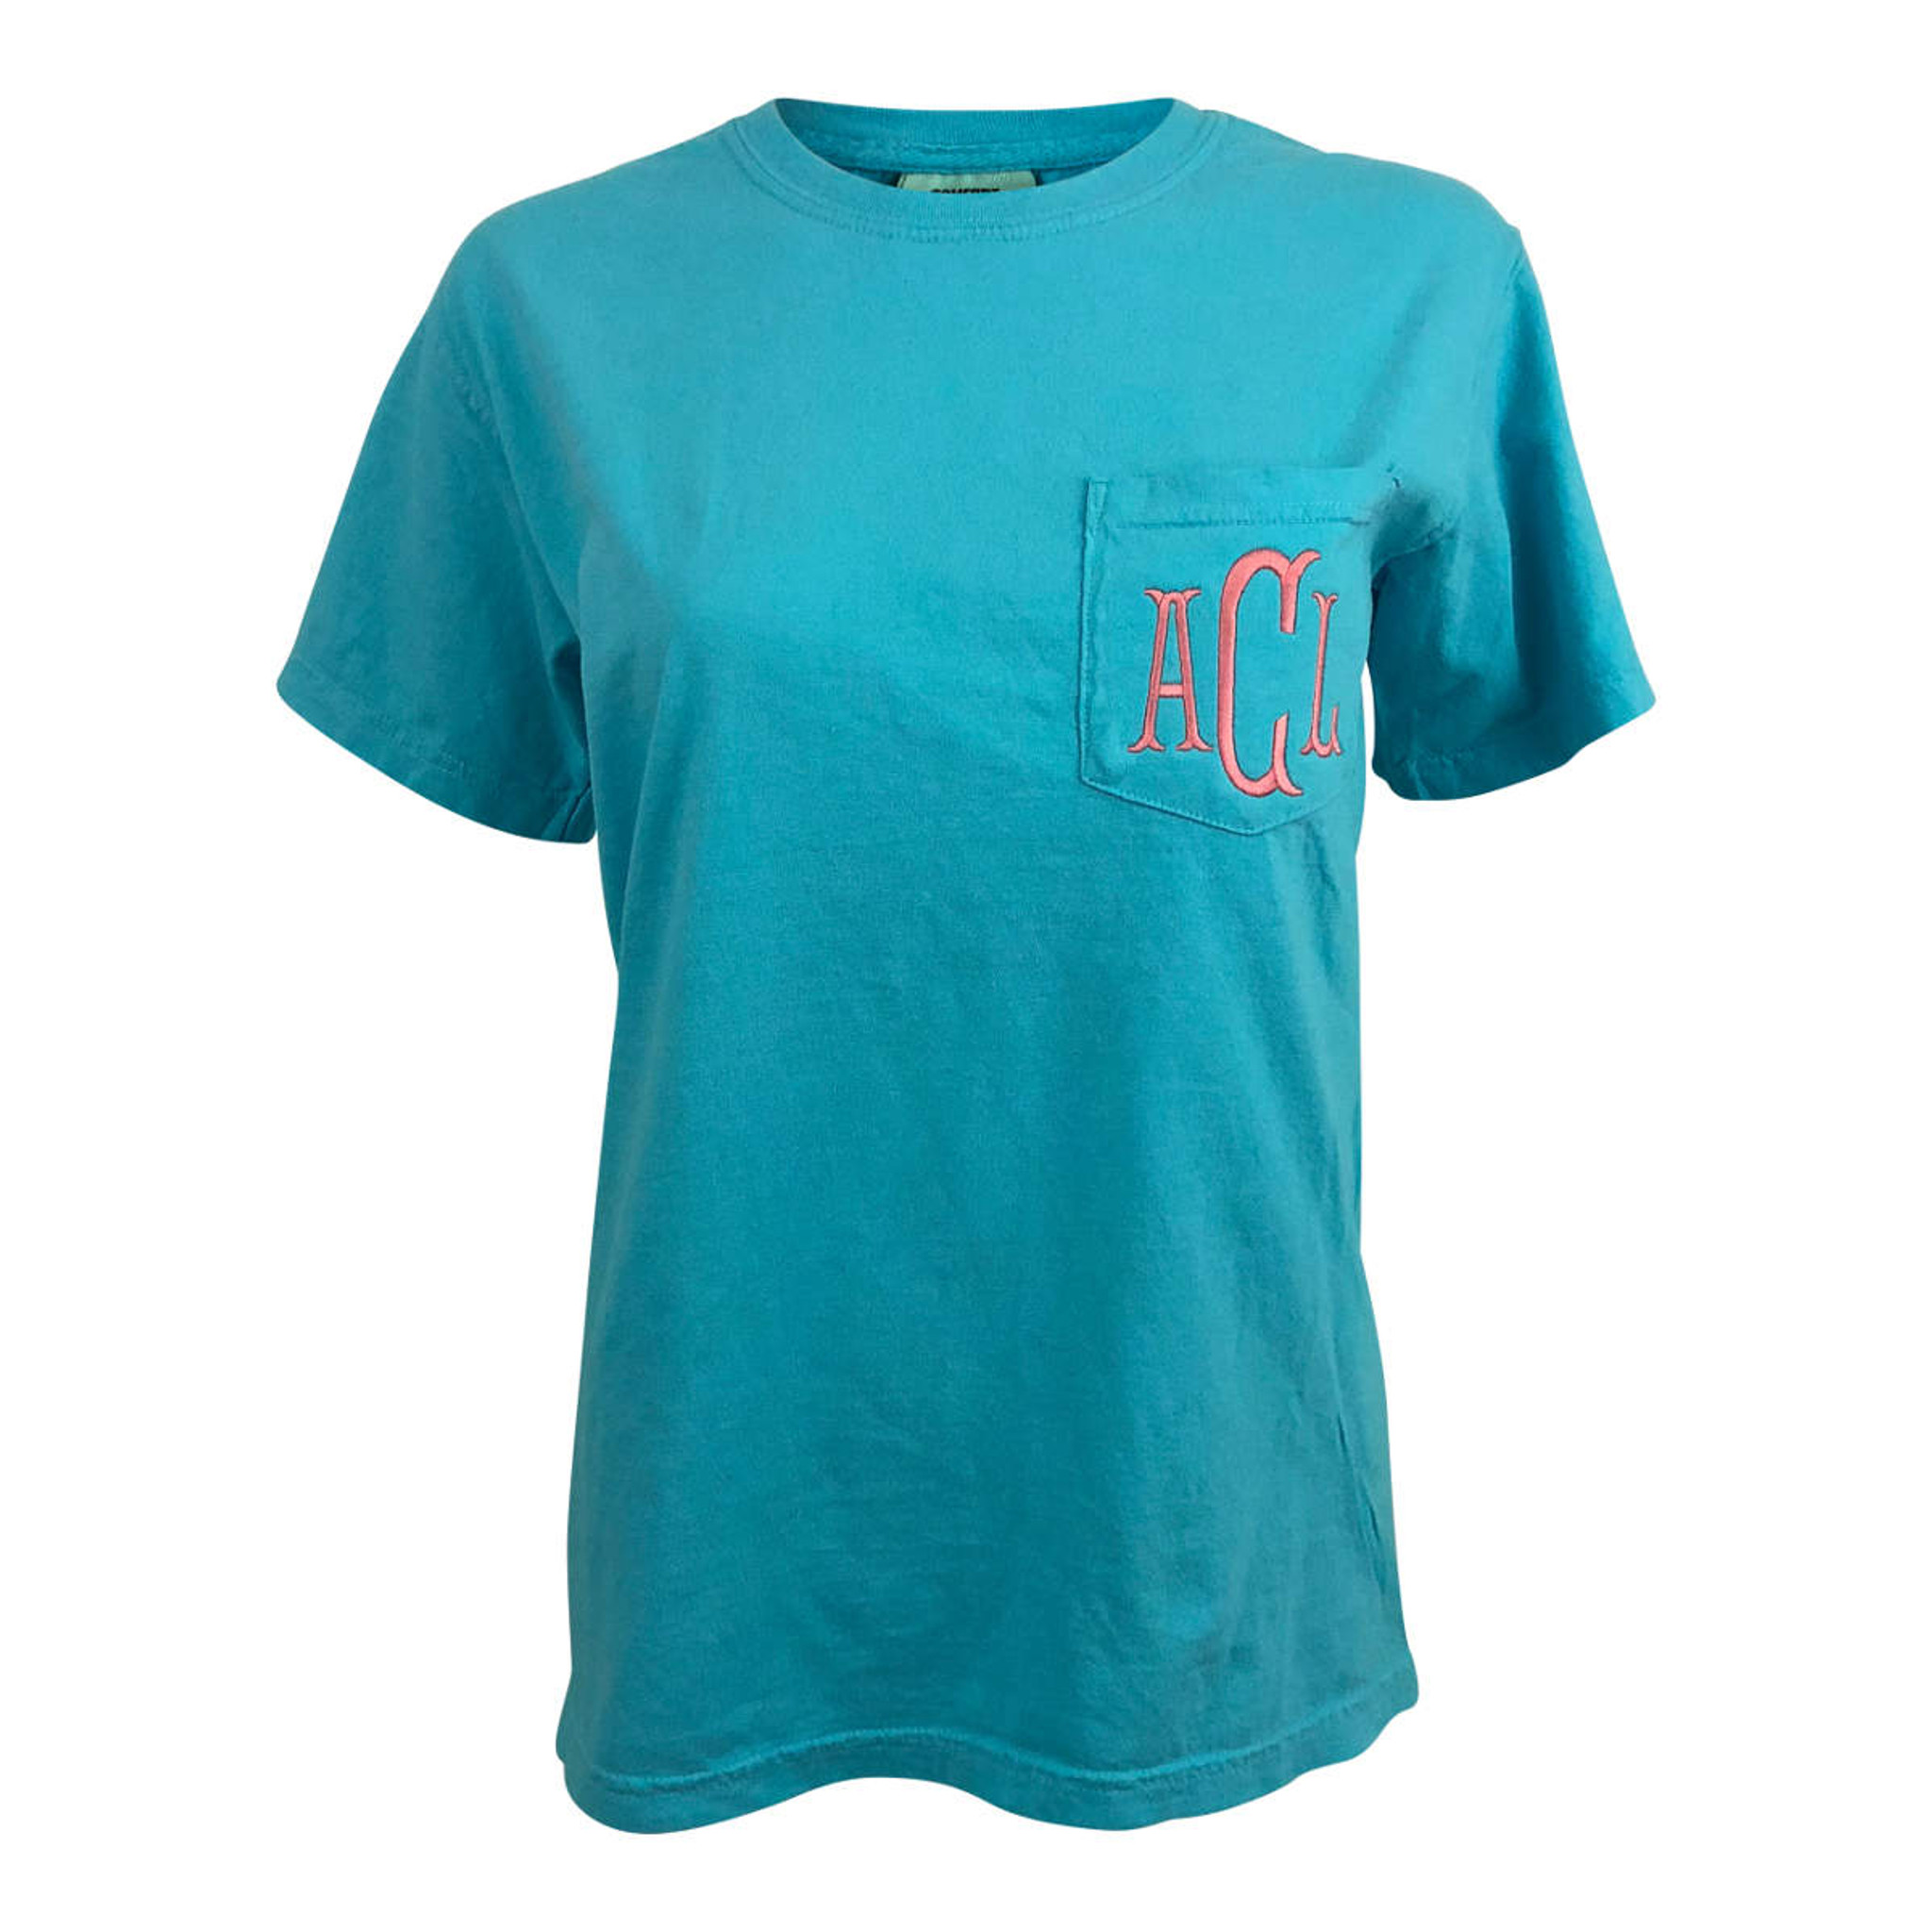 Comfort Colors Short Sleeve - Bright Blue